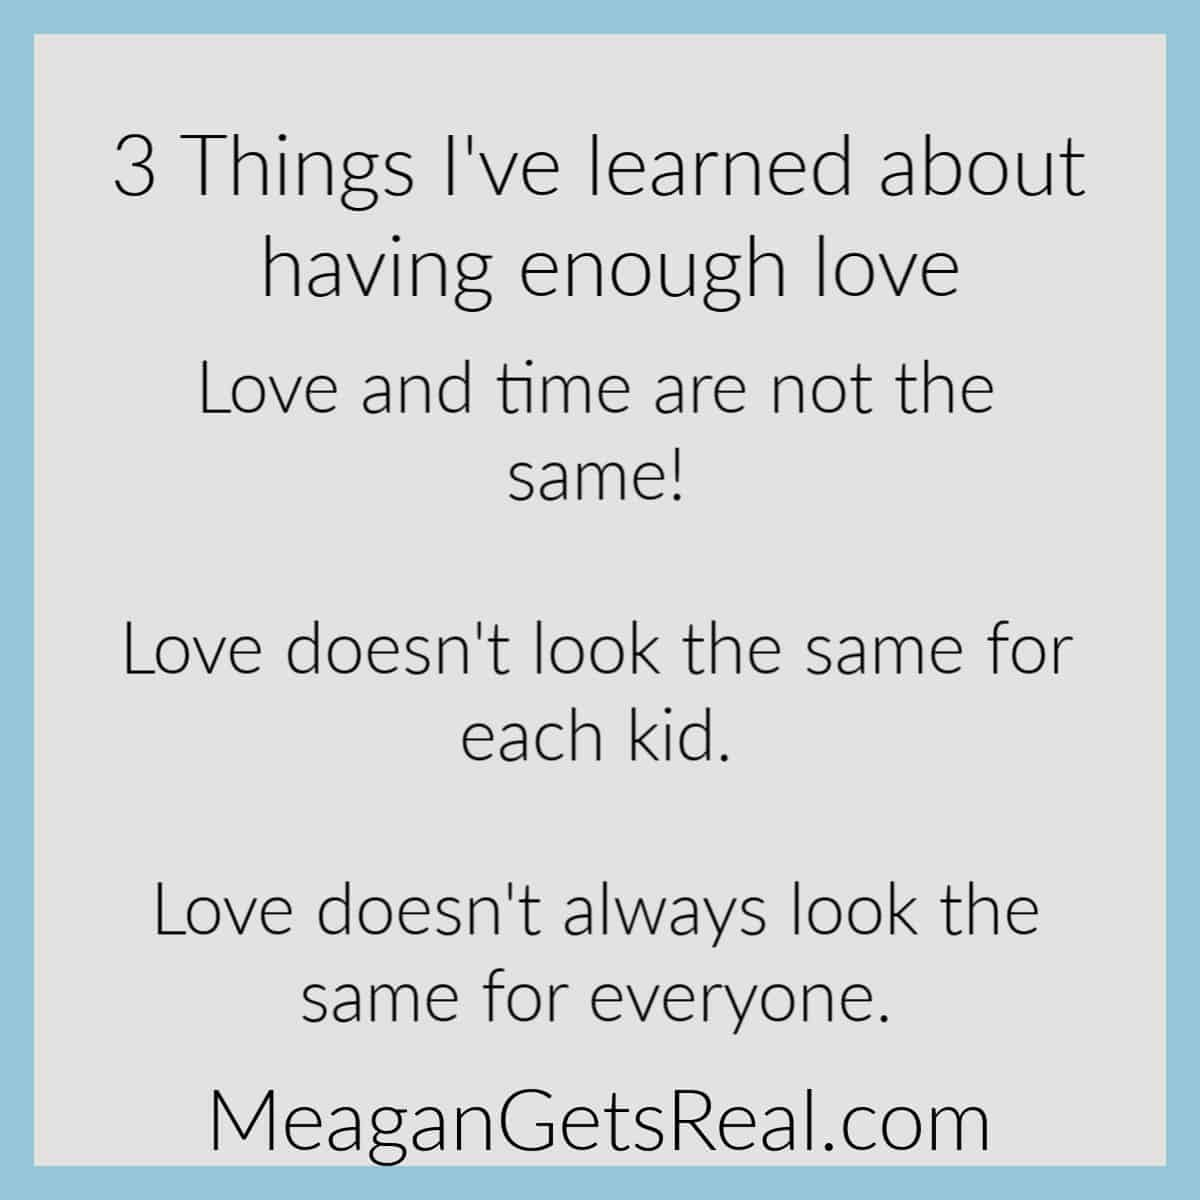 3 Things I've learned about having enough education love. Support for moms doesn't have to be hard to find with this comprehensive guide filled with parenting resources for moms you won't want to miss.